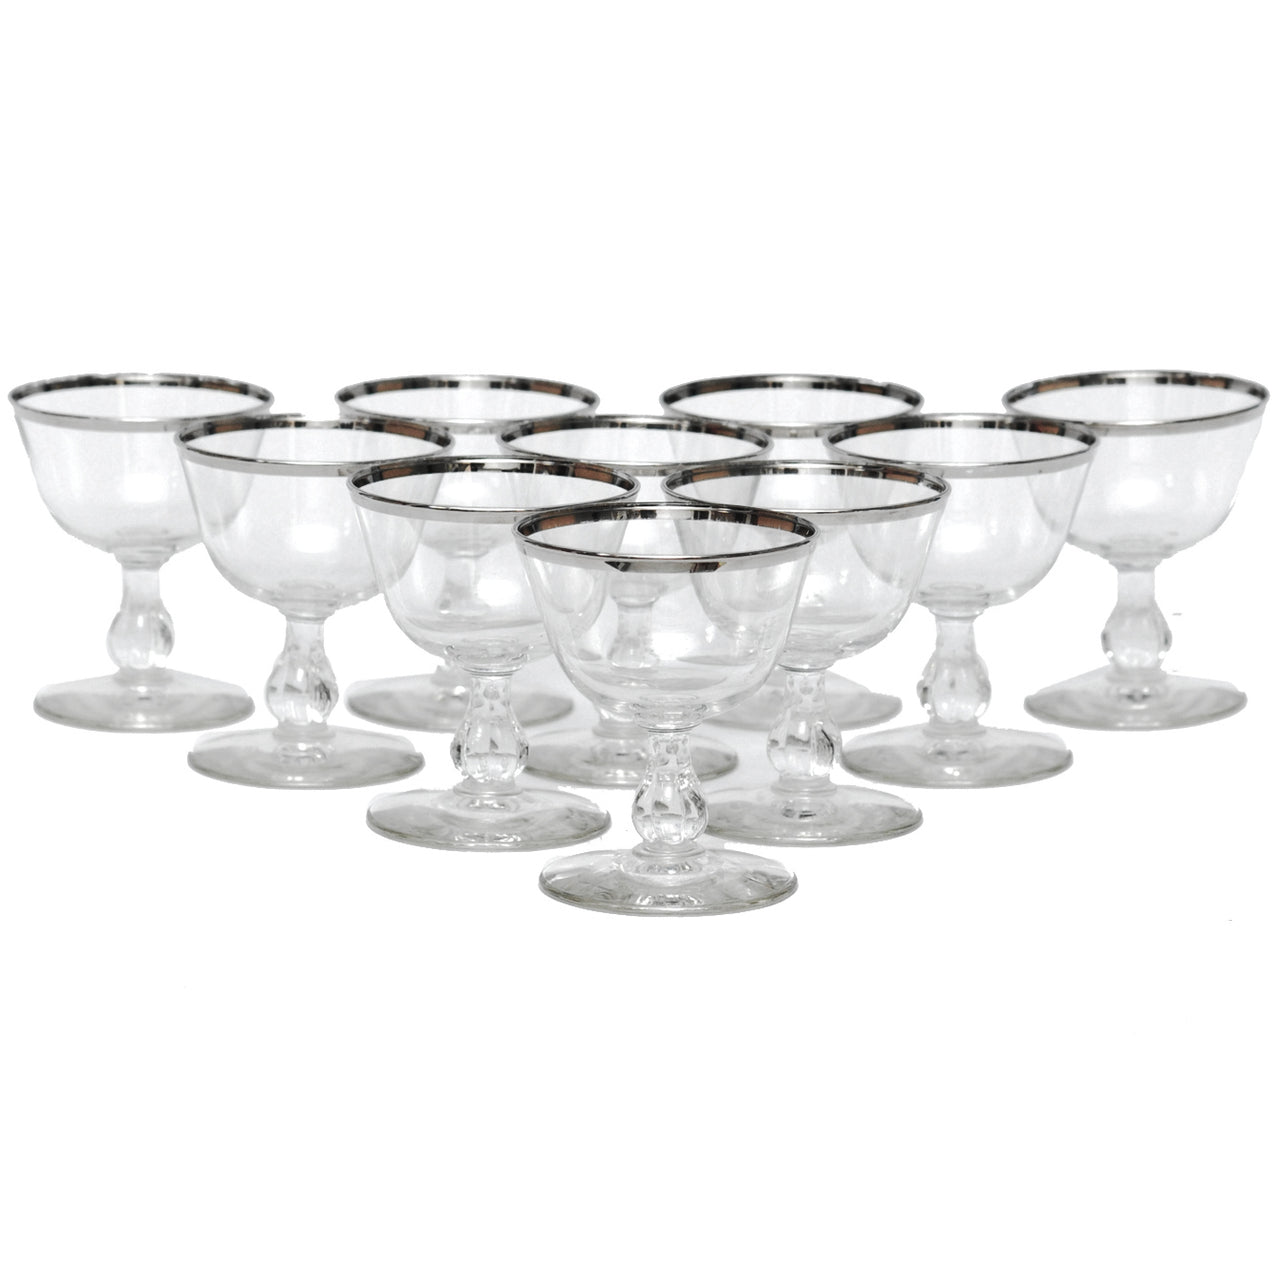 Vintage Mid Century Silver Rim Cocktail Glasses | The Hour Shop